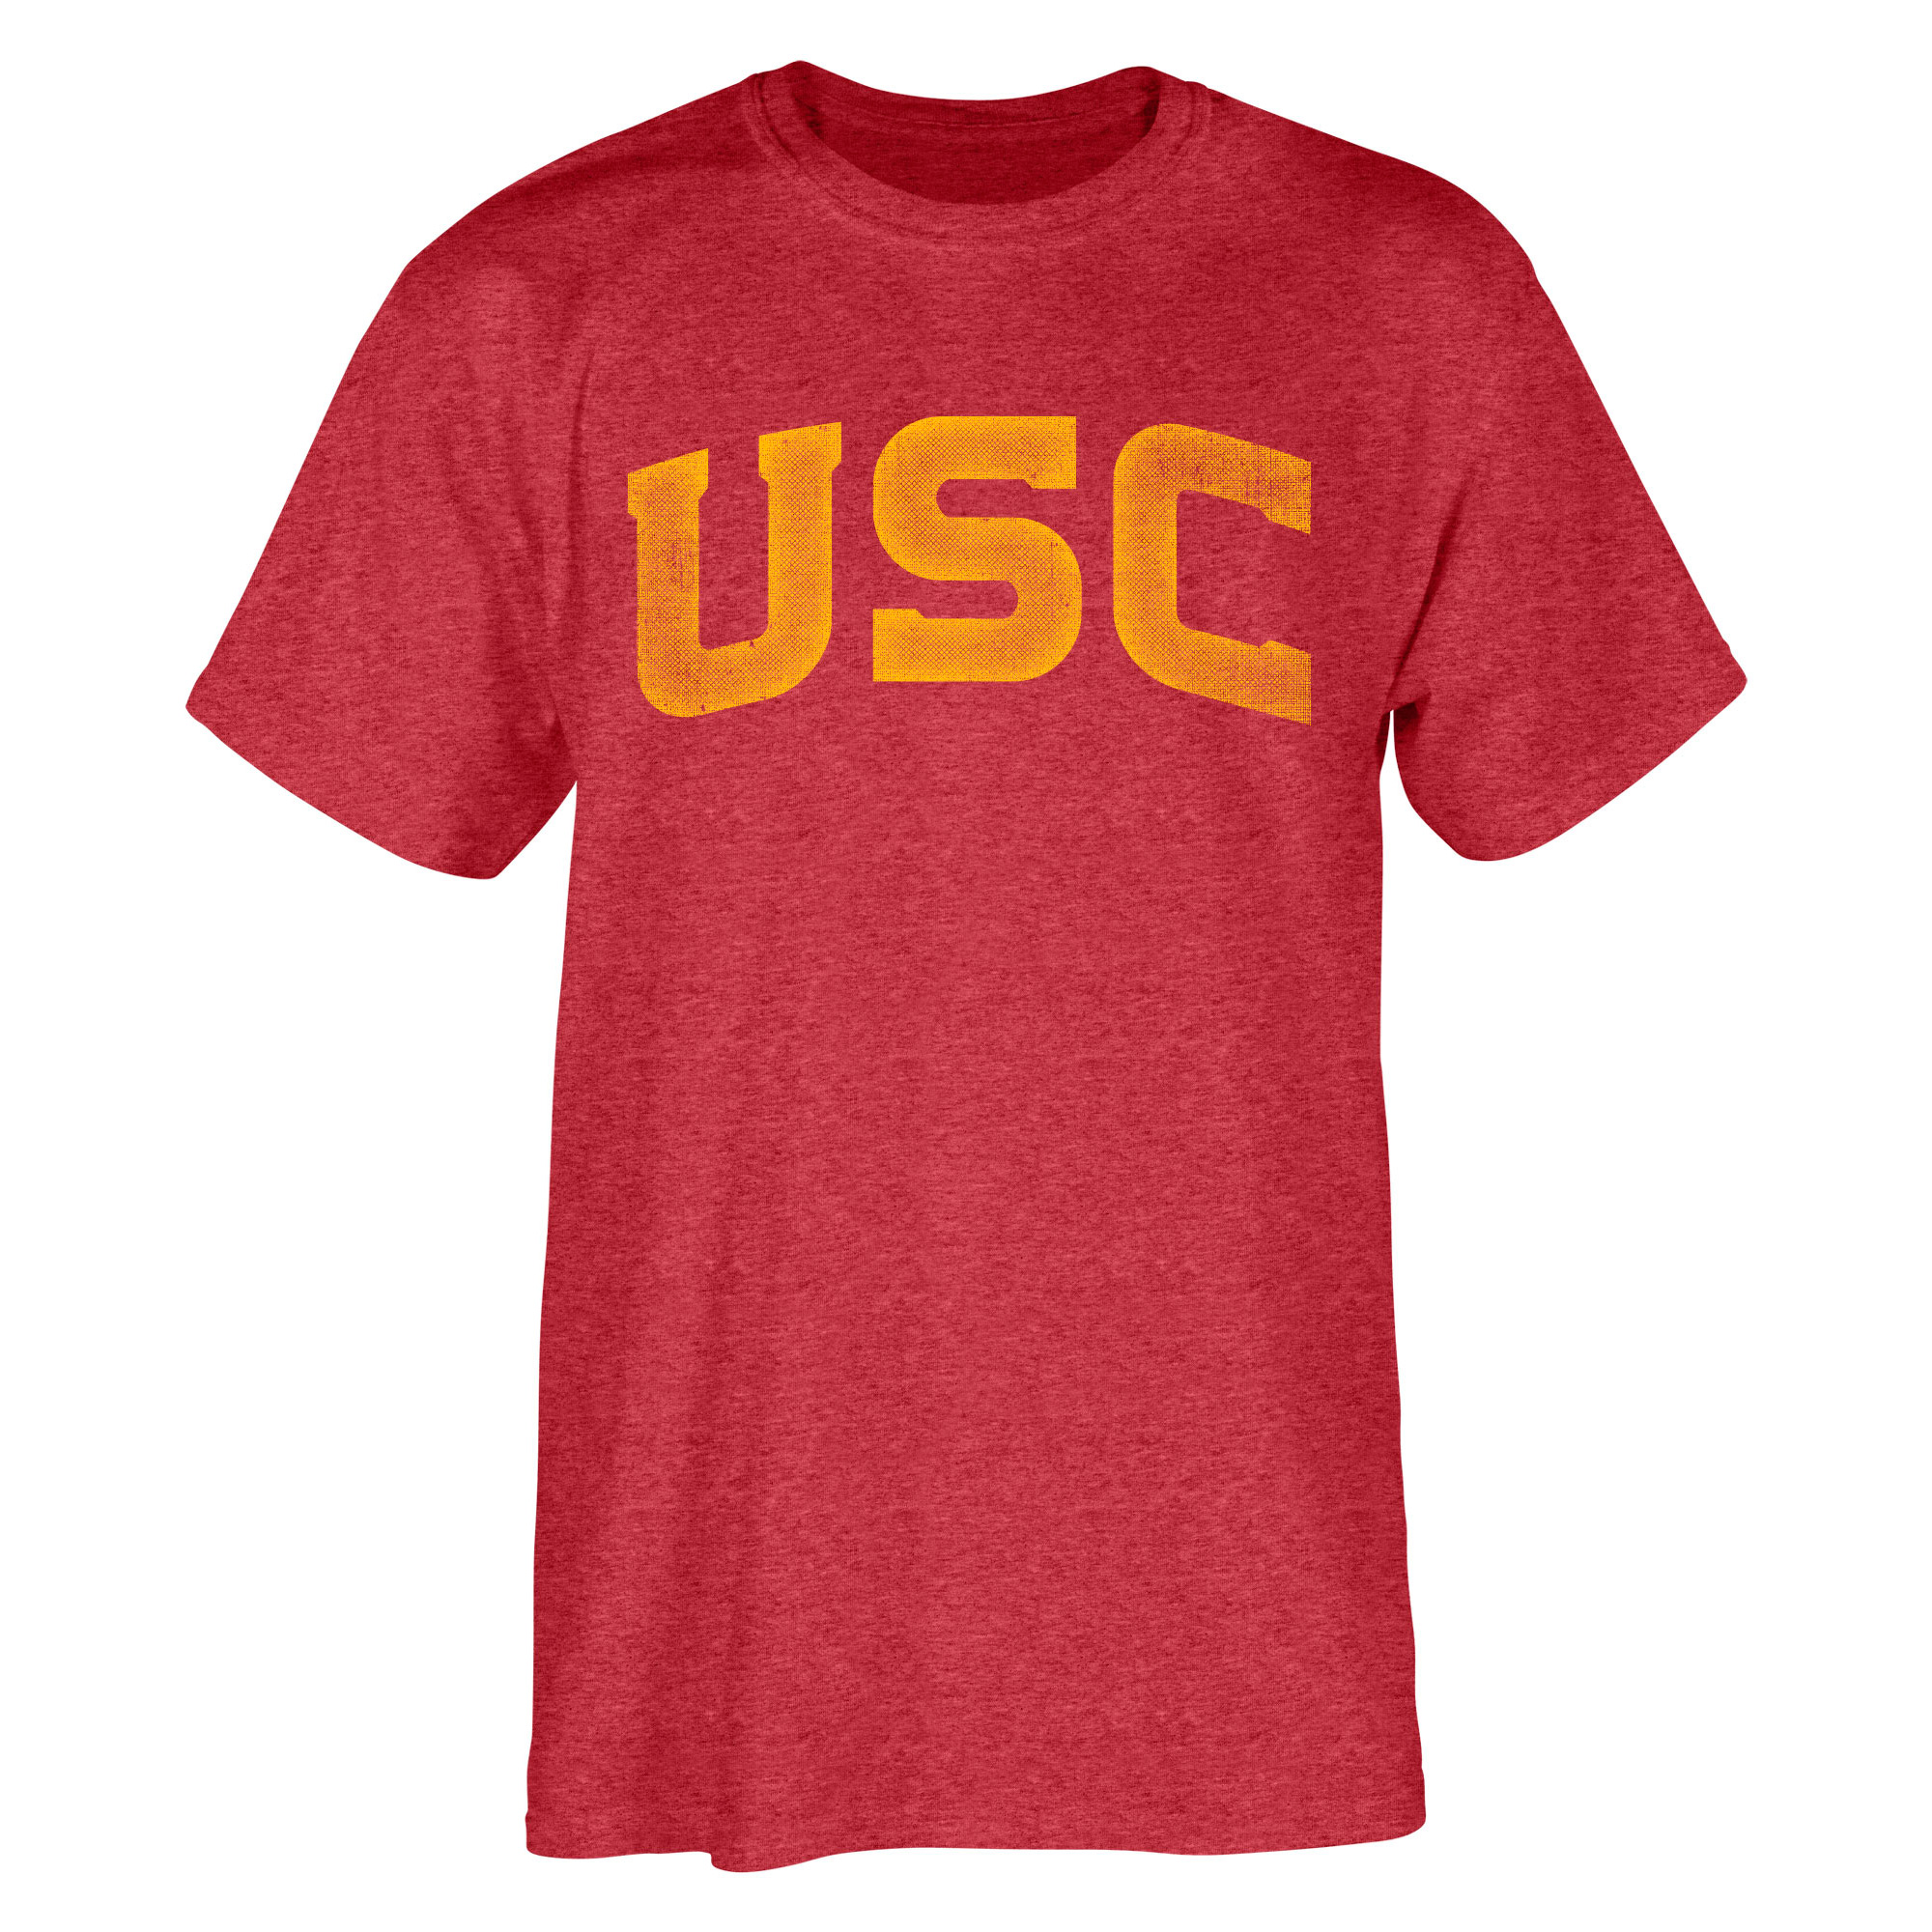 Men's Heathered Cardinal USC Trojans Distressed Arch T-Shirt